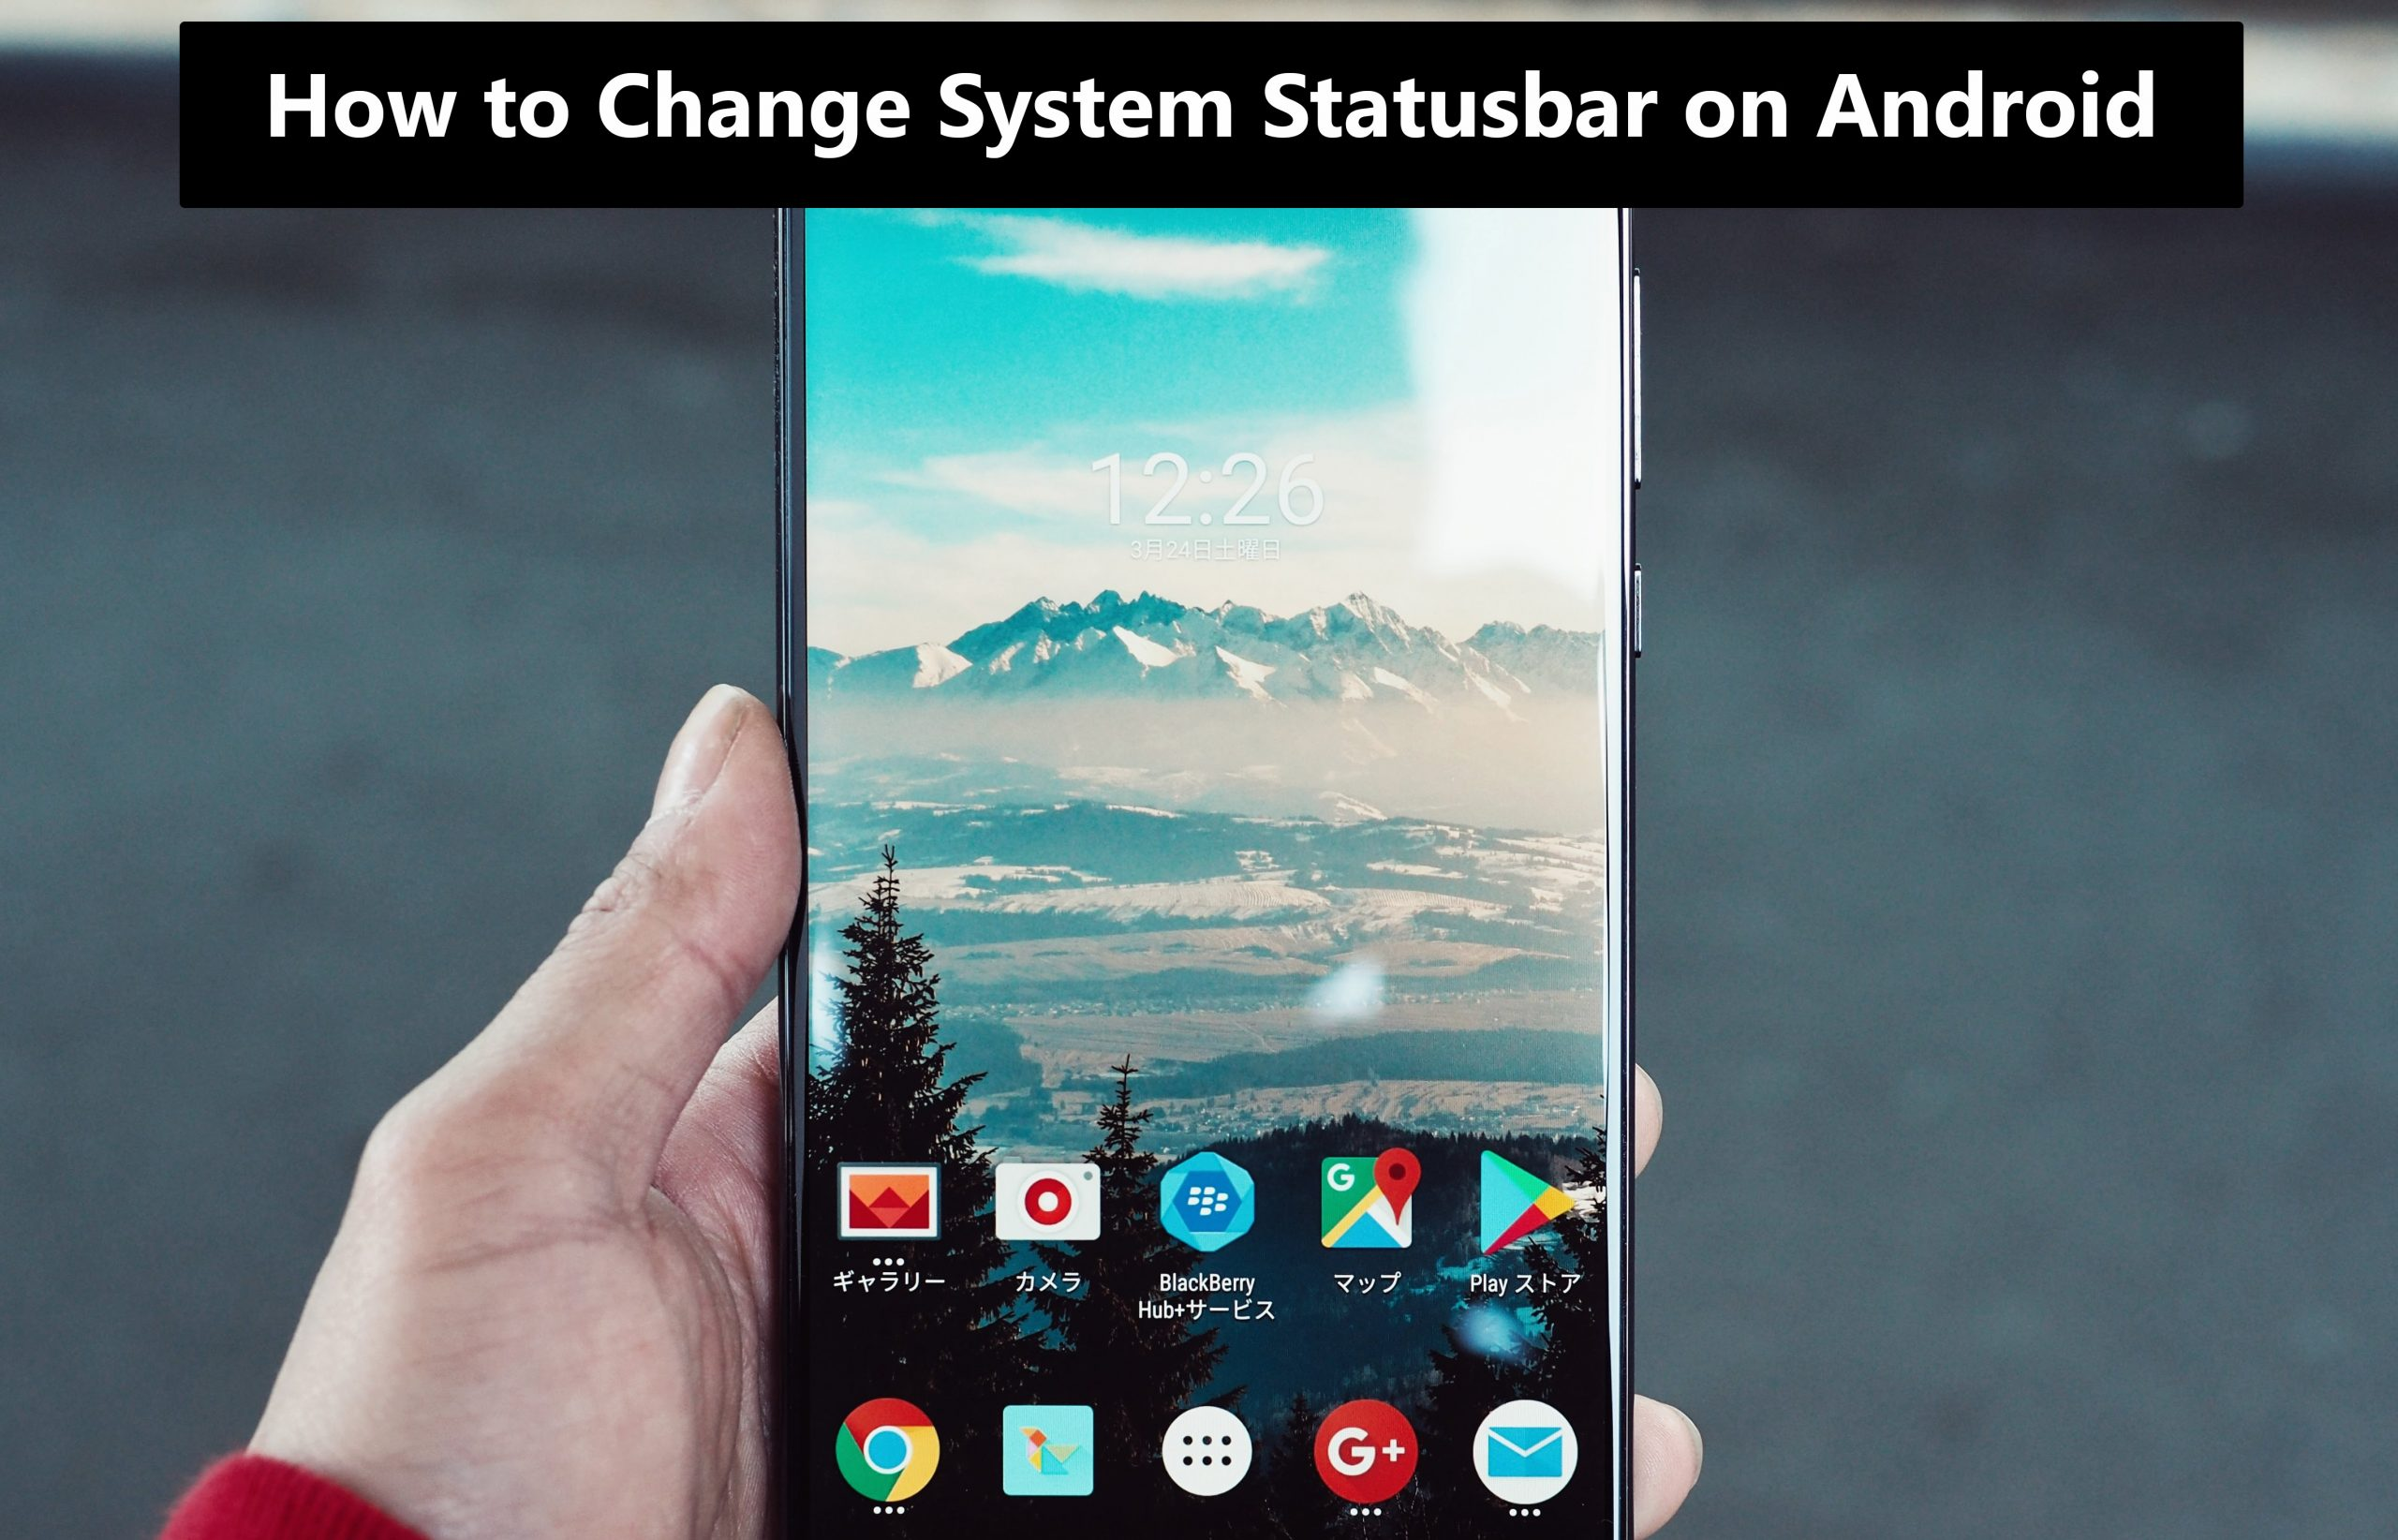 How to Change System Statusbar on Android